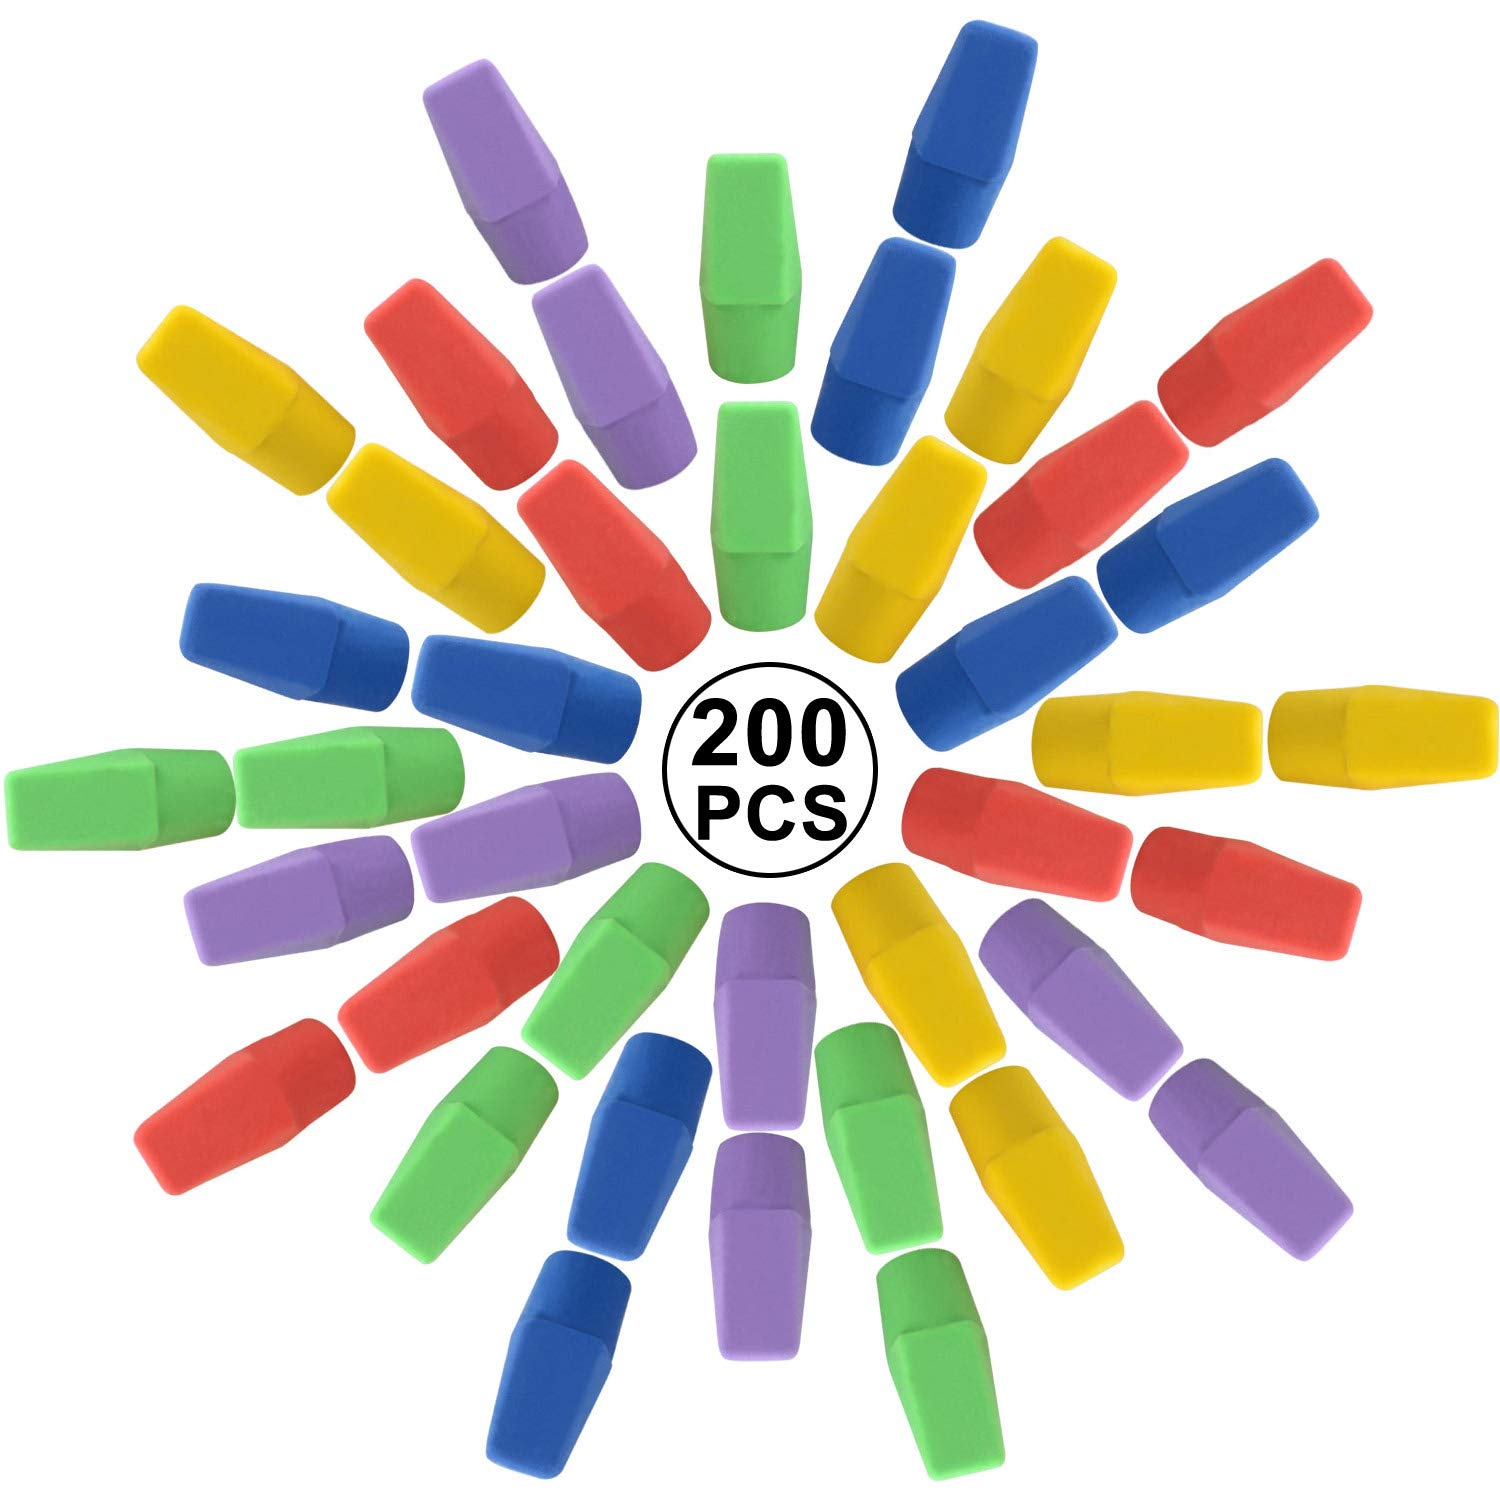 200PCS Pencil Eraser Caps, disegno a matita, gomma tappi per bambini studenti Fun Learning, colori assortiti Facethoroughly